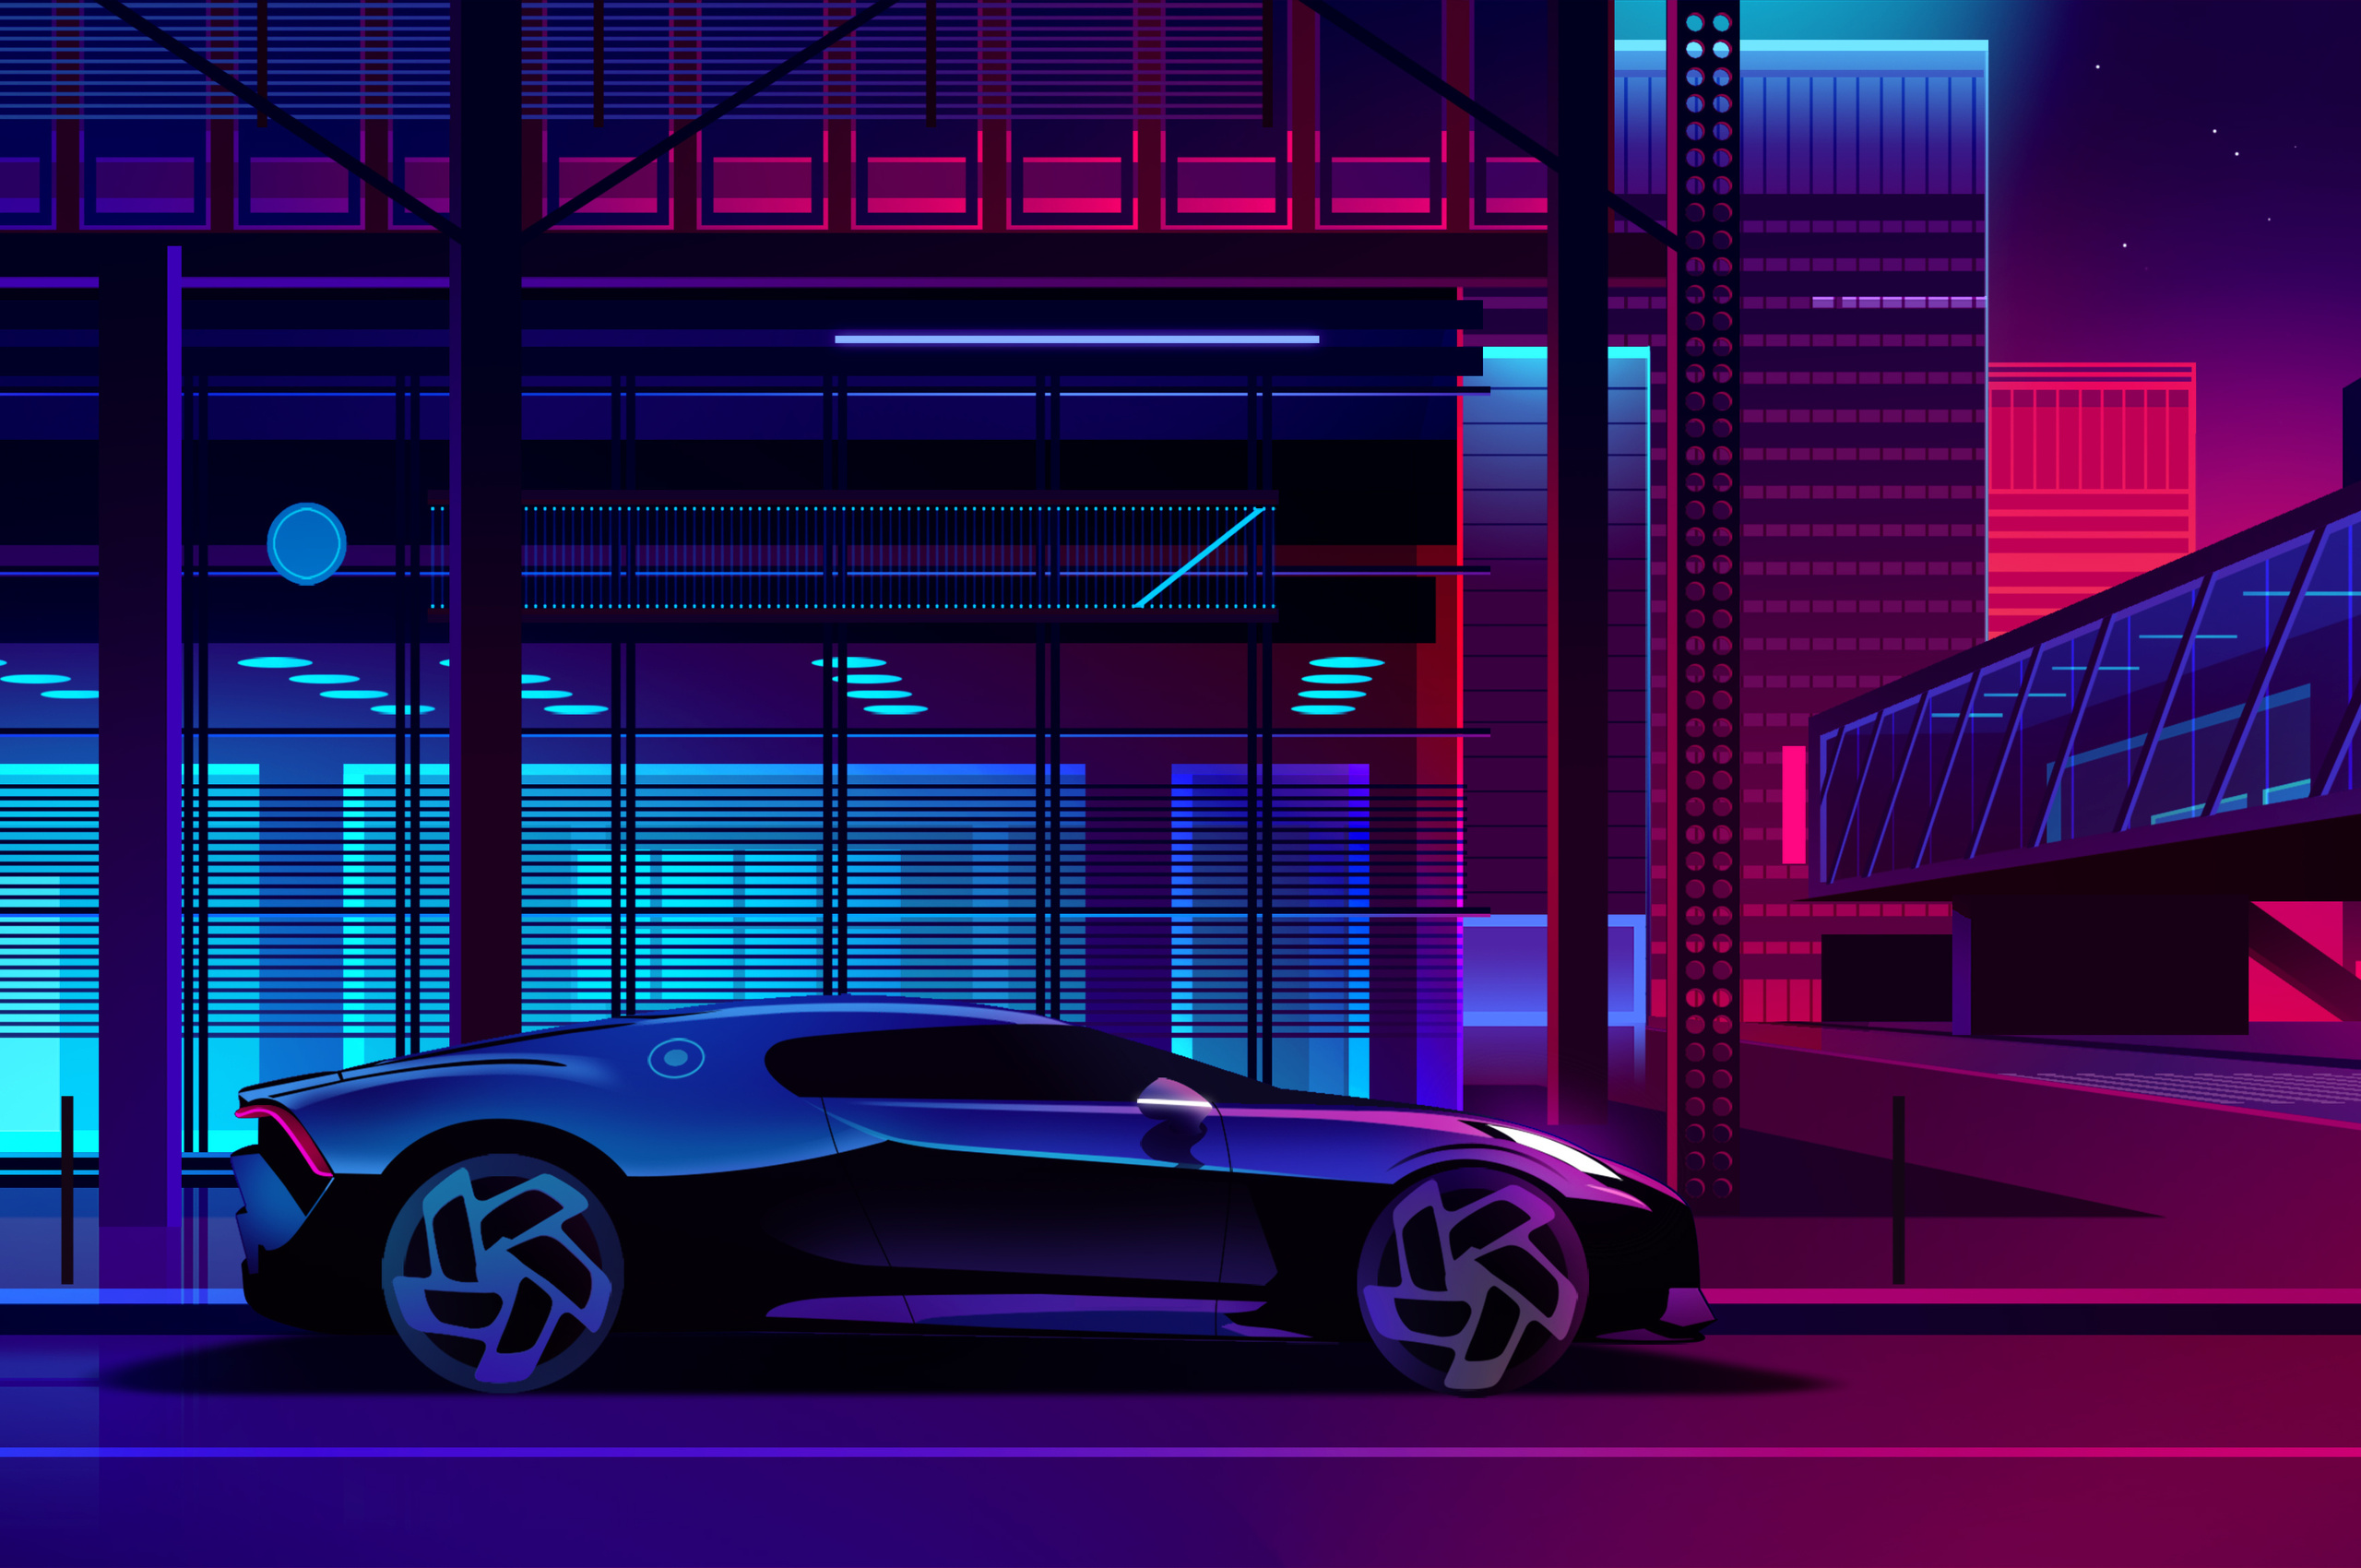 2560x1700 Bugatti Noire Neon Art Chromebook Pixel Hd 4k Wallpapers Images Backgrounds Photos And Pictures